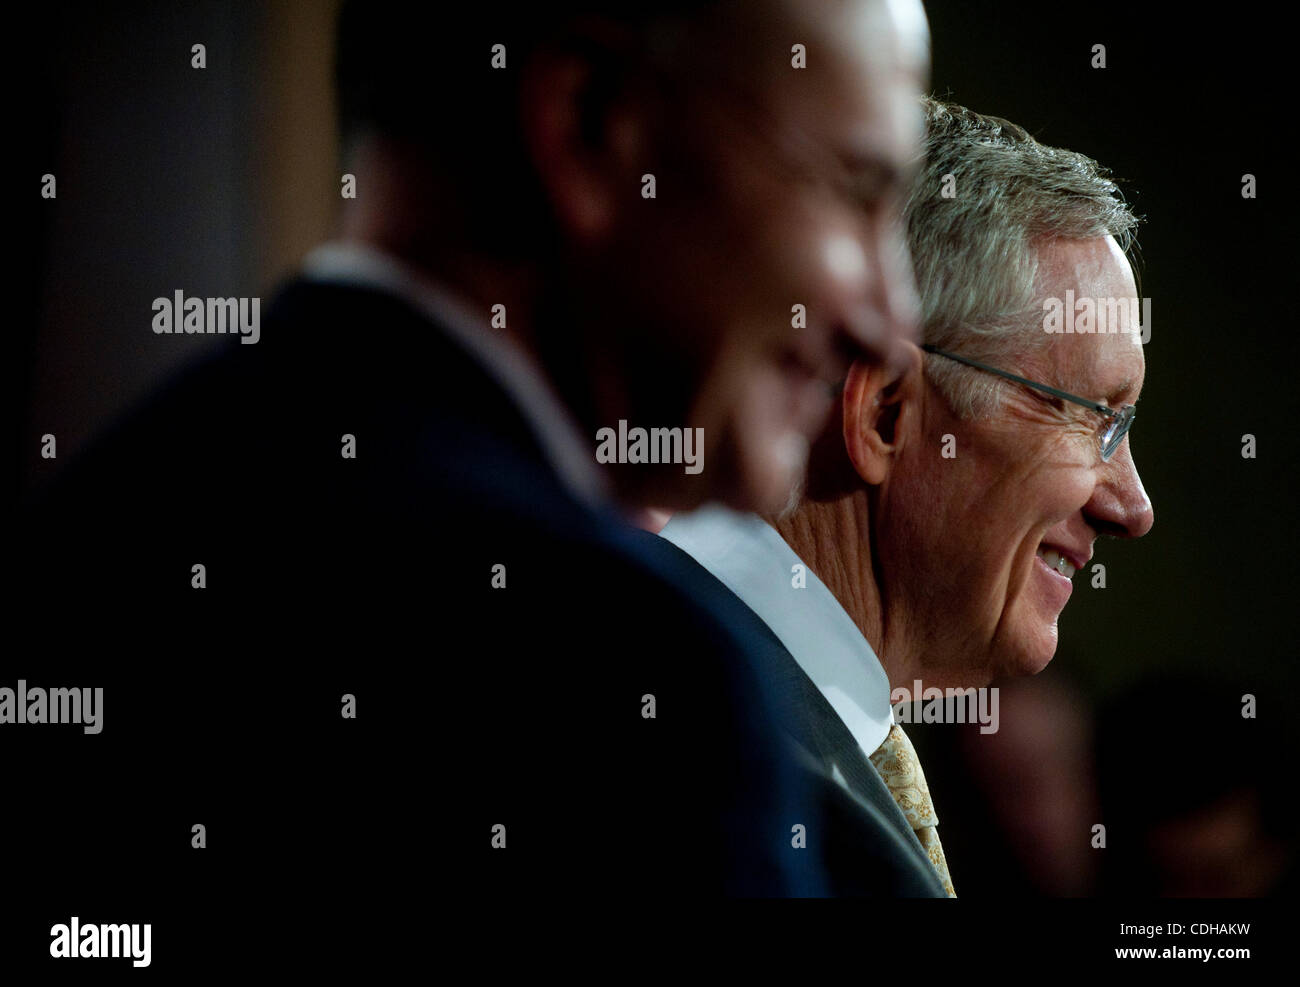 Feb 1, 2011 - Washington, District of Columbia, U.S. - The Senate Majority Leader HARRY REID (D-NV) speaks to the - Stock Image